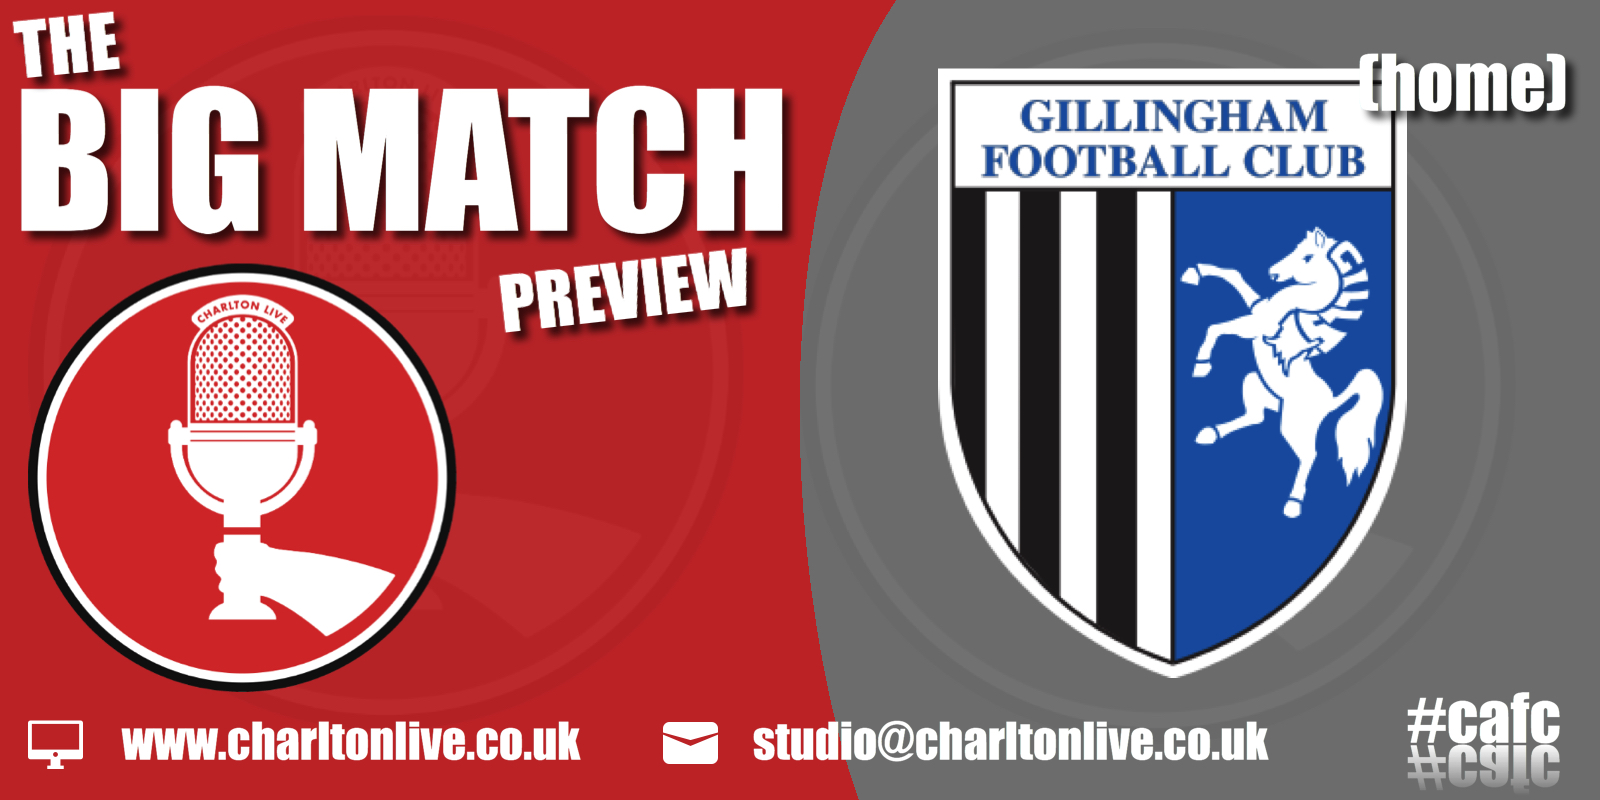 Join Louis Mendez, Tom Wallin and Nathan Muller as they gear up for Saturday's home game with Gillingham. They chat about the latest takeover update […]